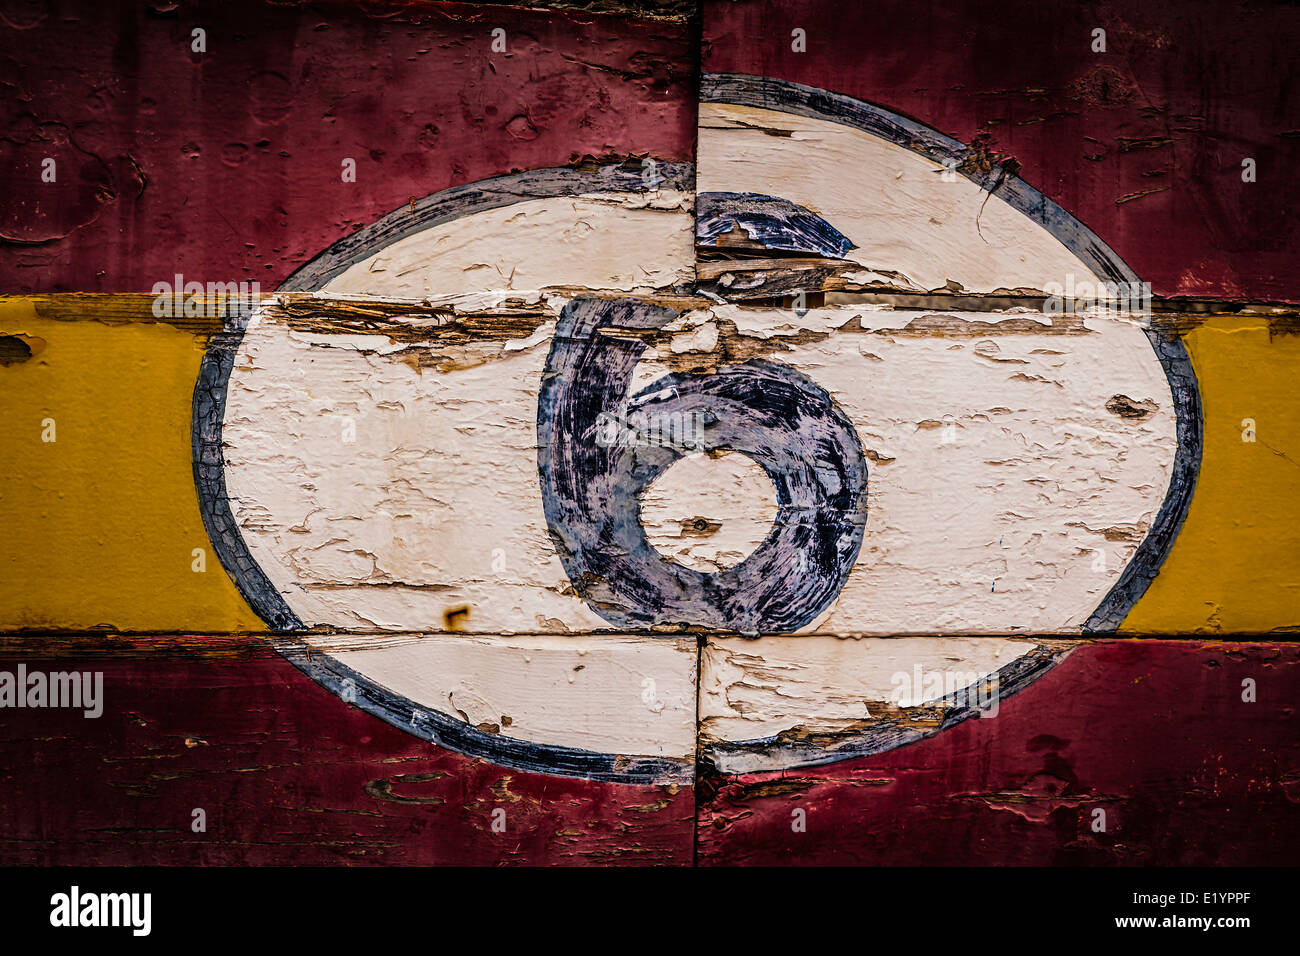 Old painted signs with numerals. Number 6 from a series. - Stock Image